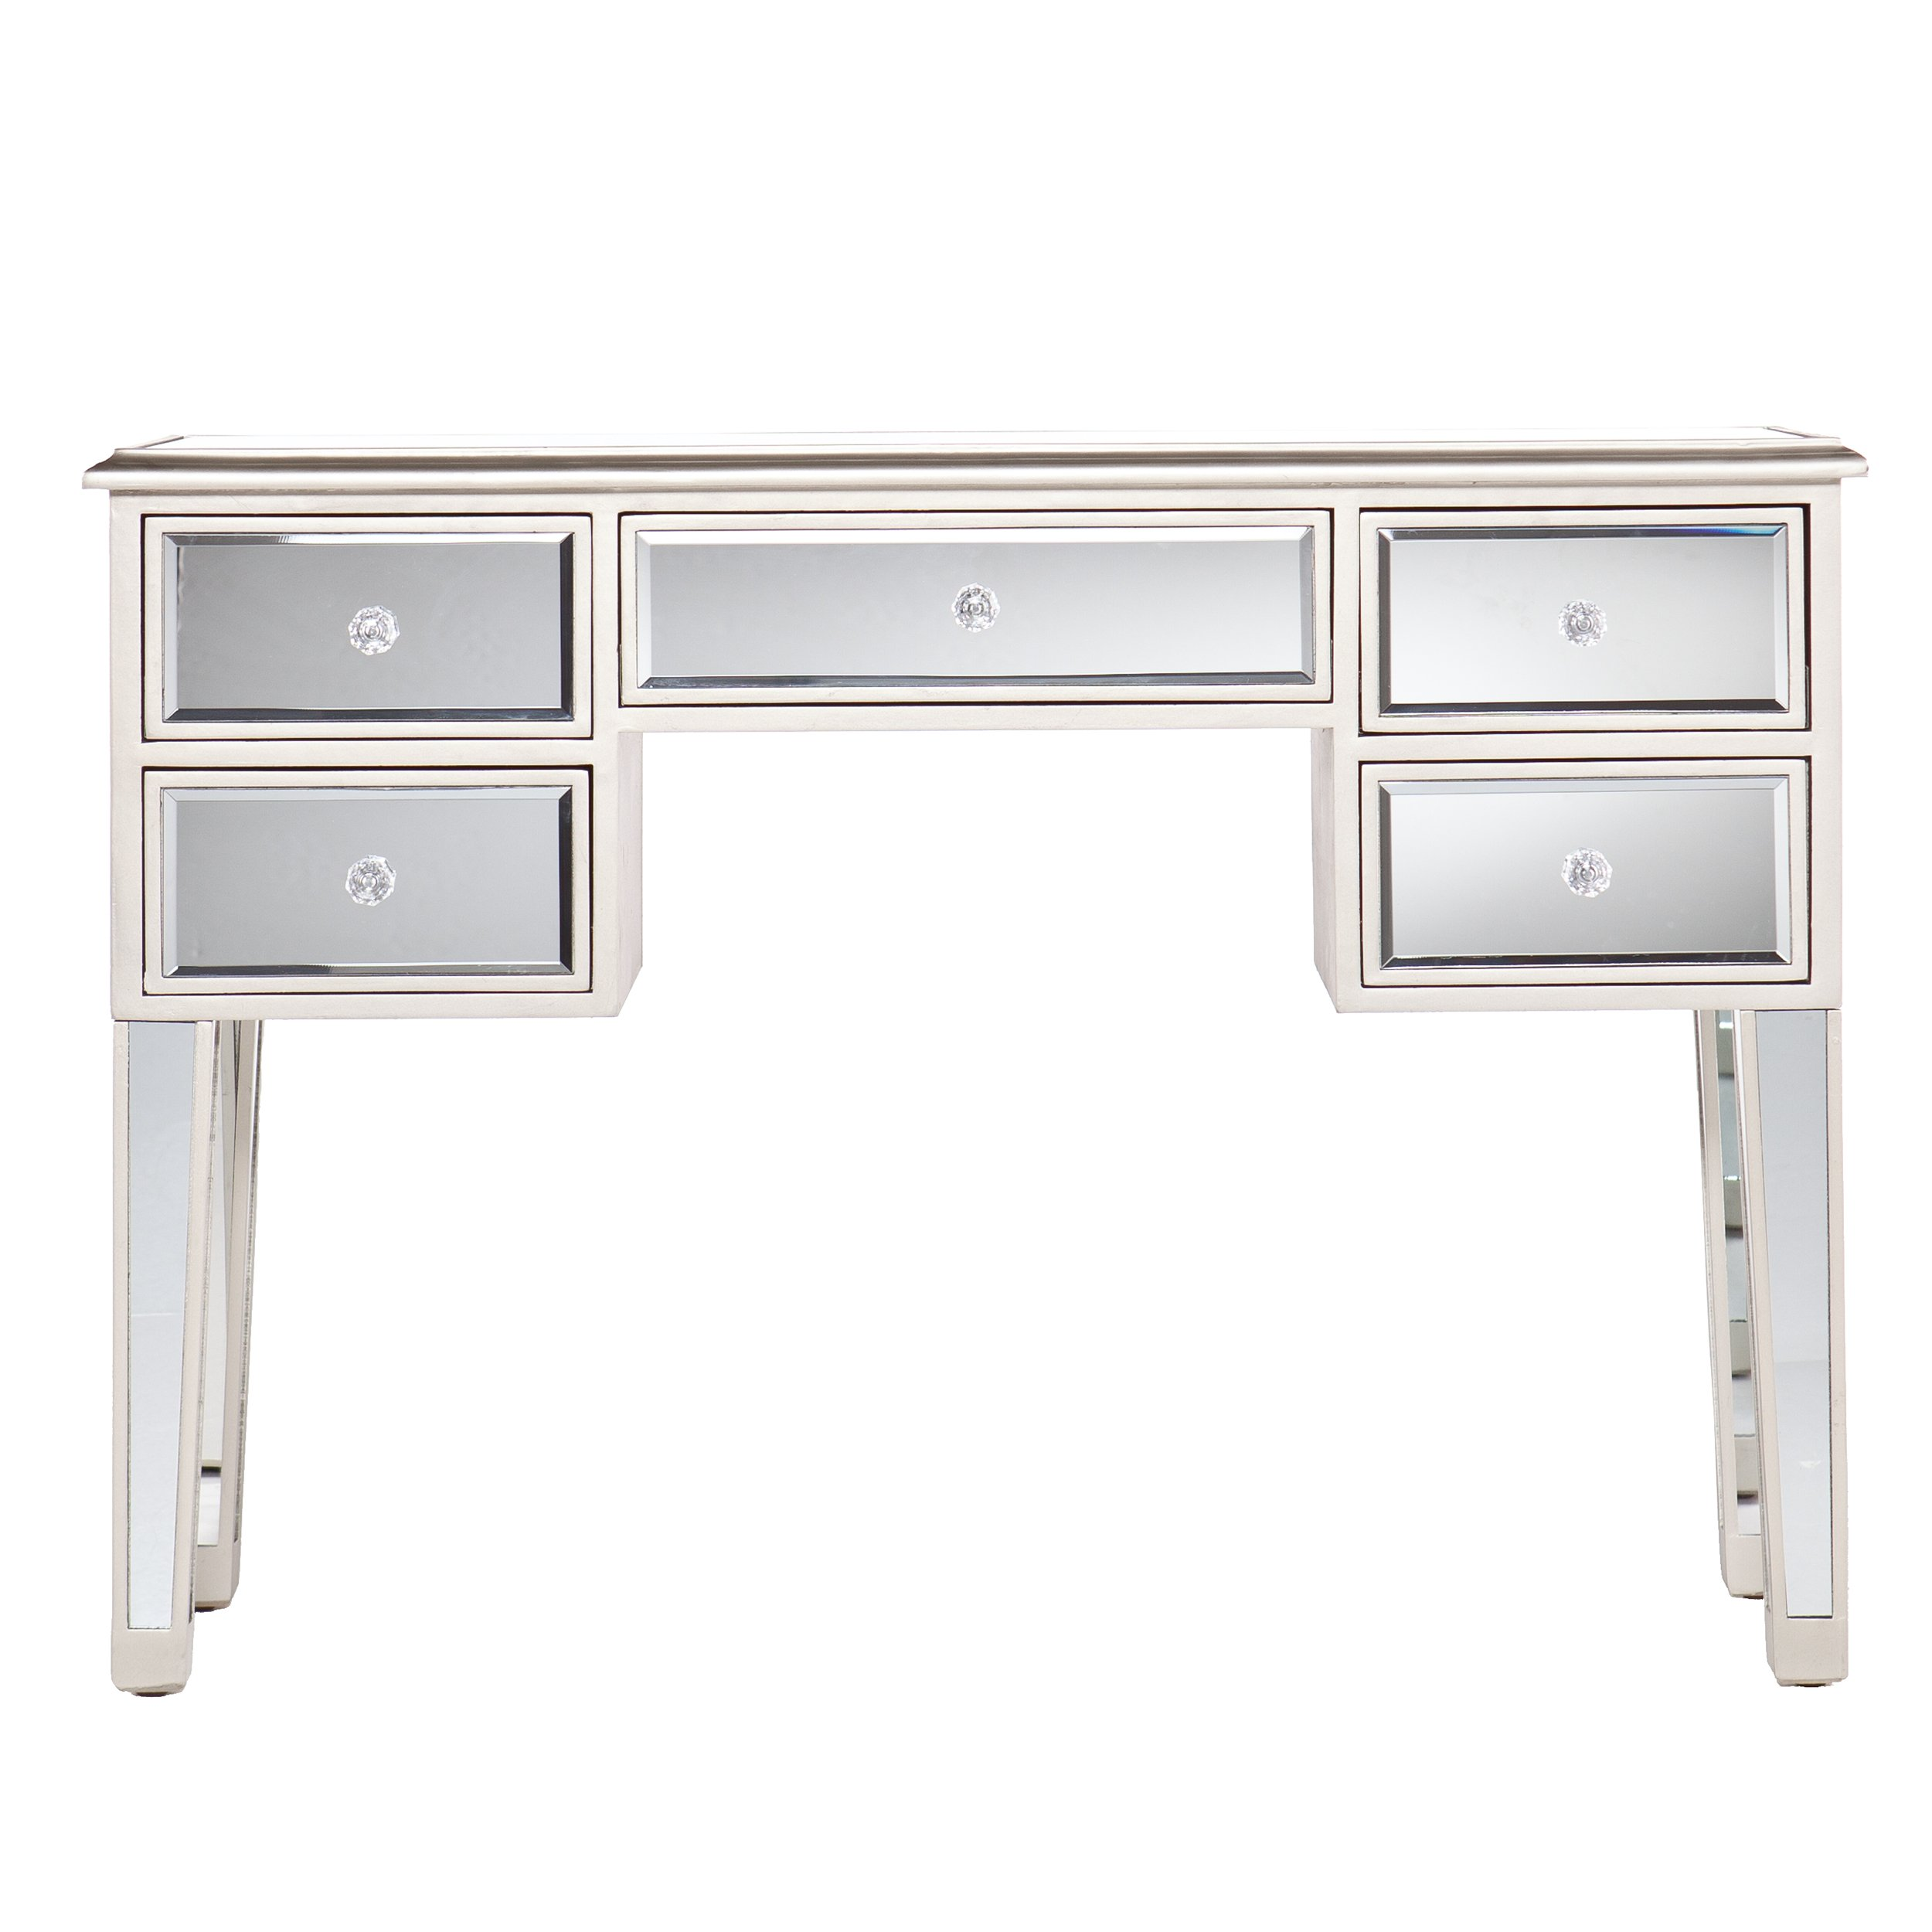 Mirage Mirrored Desk Console Table - Mirror Surface w/ Champagne Trim - Glam Style by Southern Enterprises